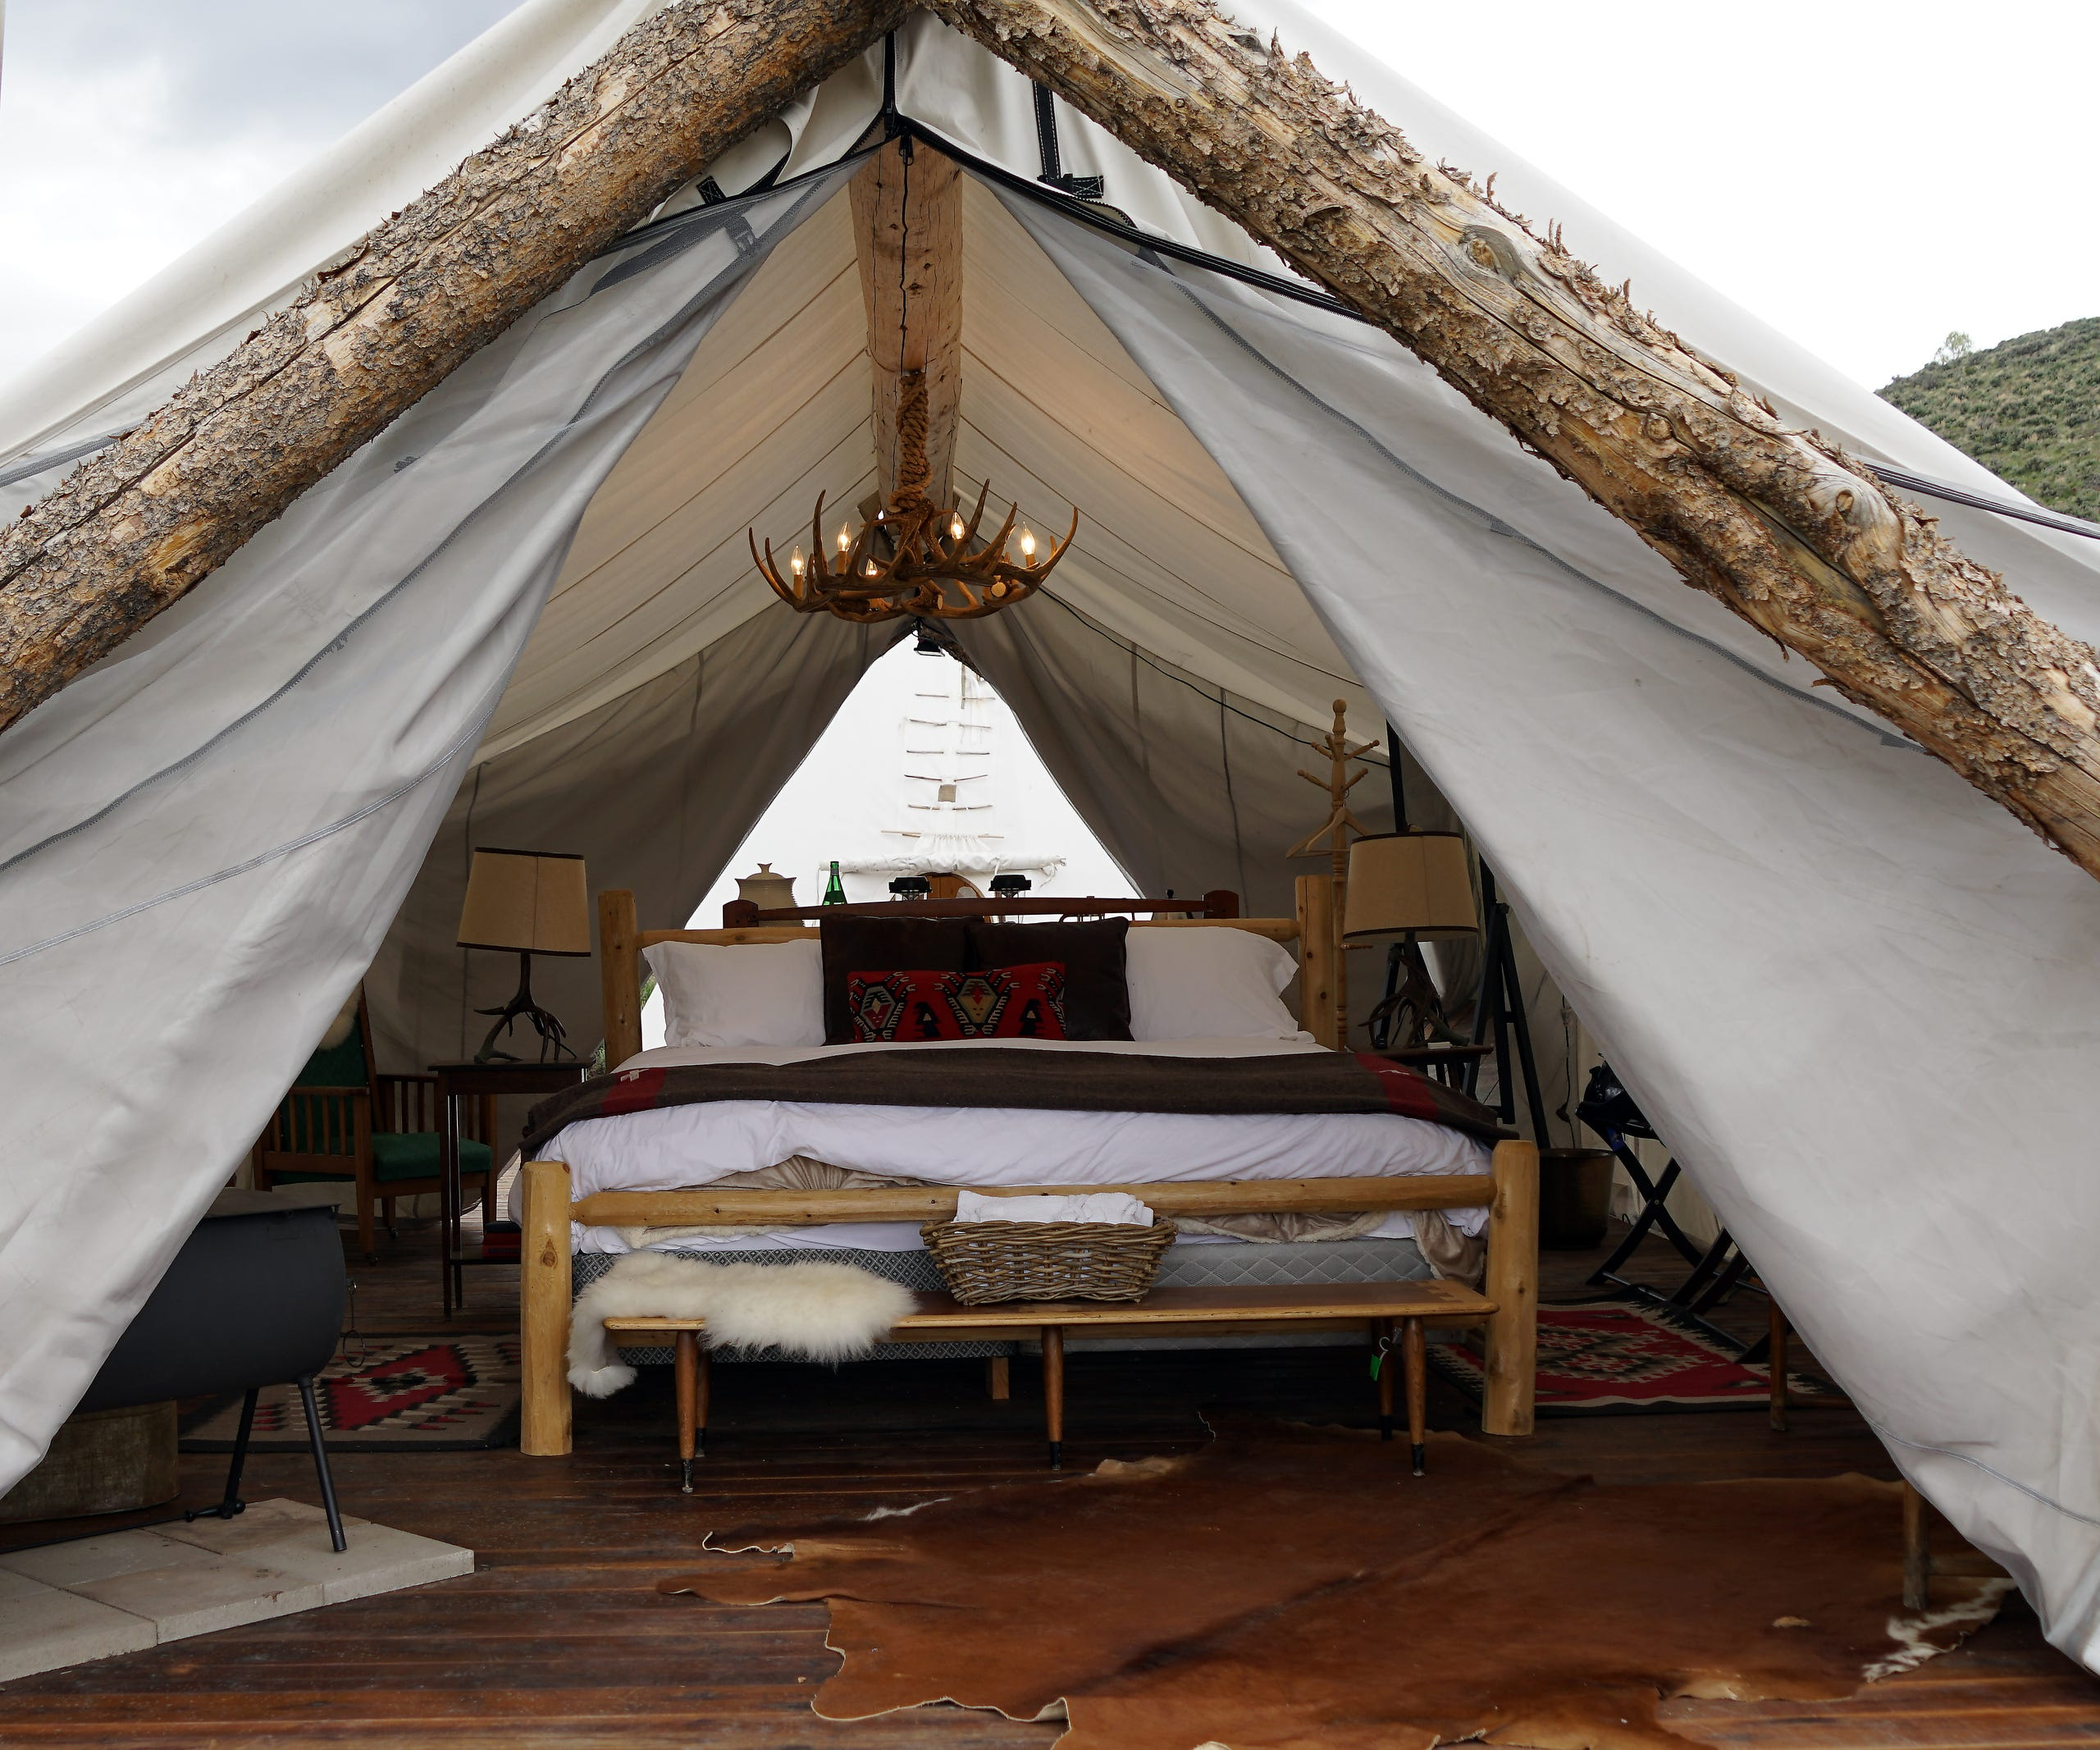 'Glamping' across America: Putting the glamour into camping